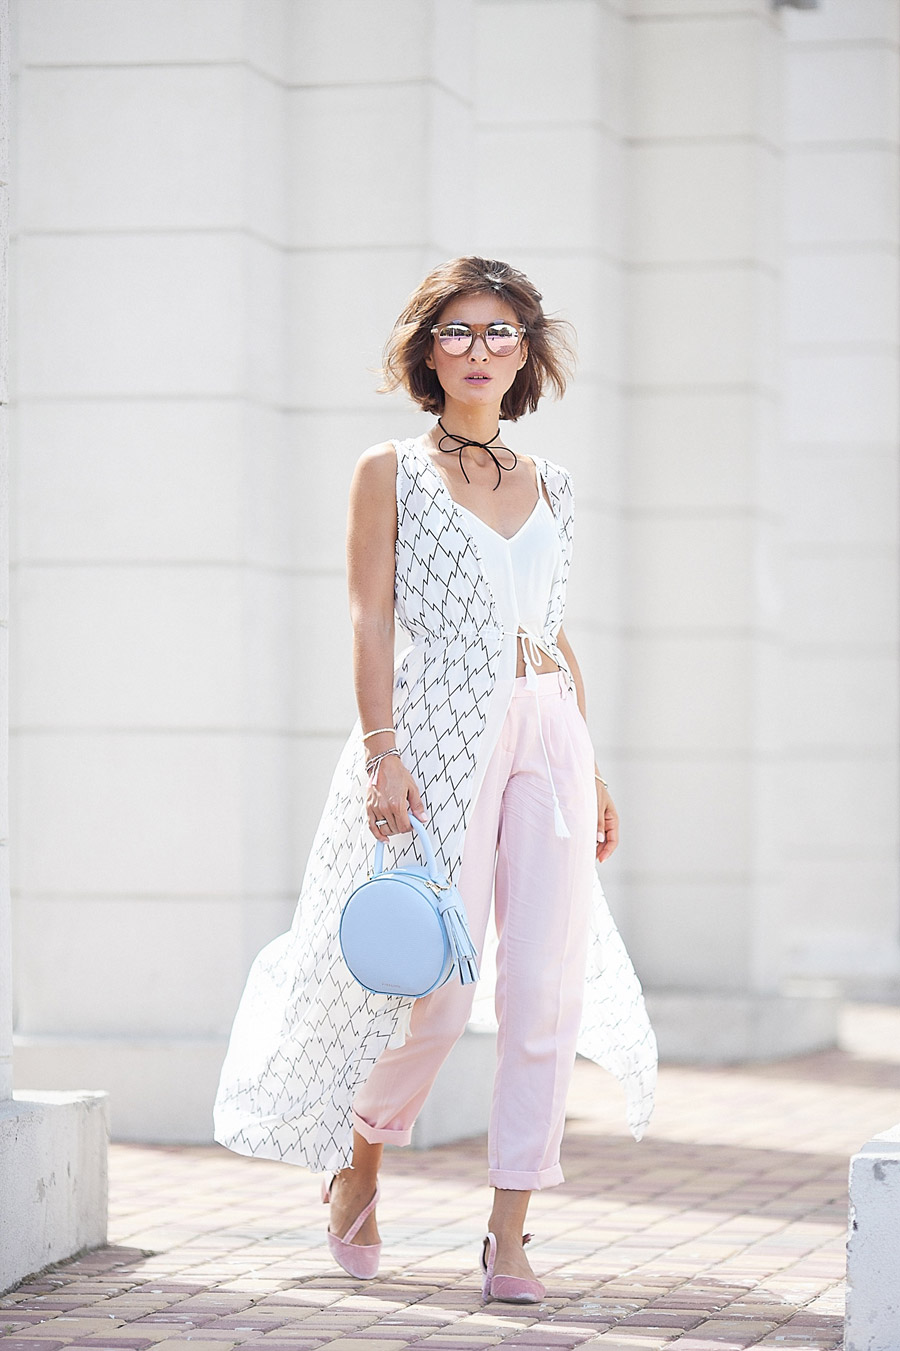 summer street styles, summer outfit ideas, best summer outfits,